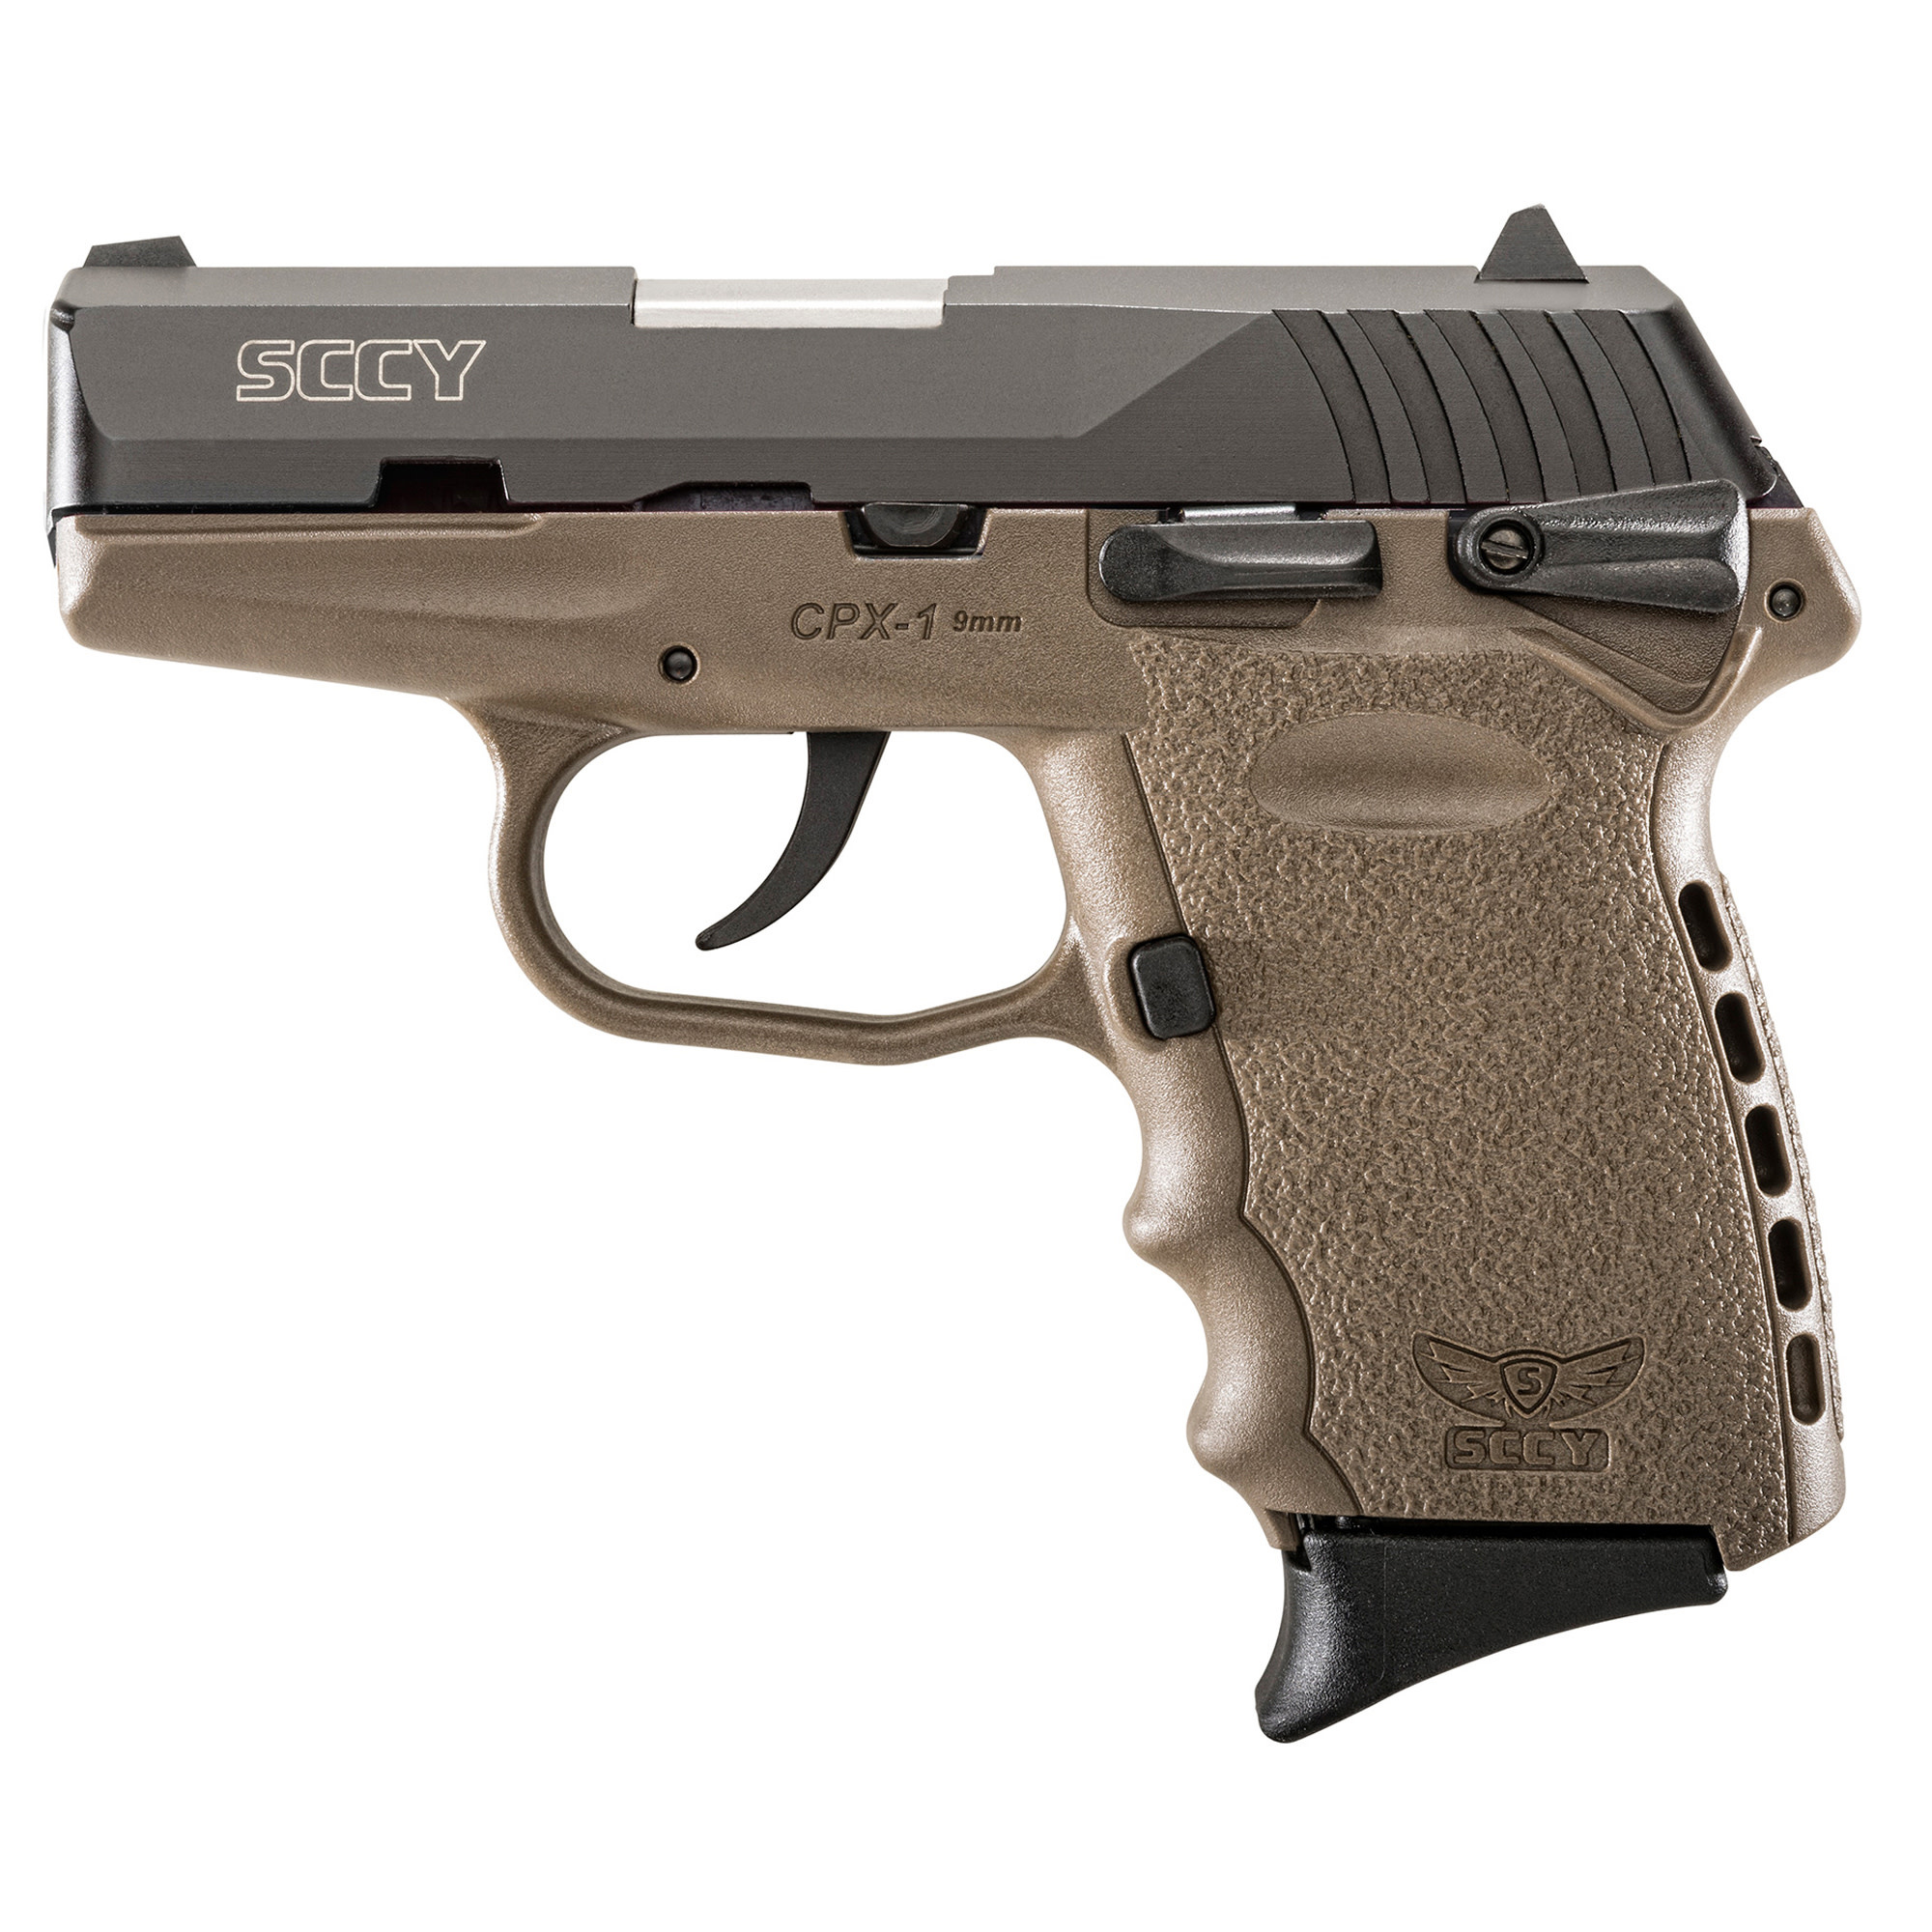 SCCY, CPX-1, Compact, 9MM, Black/FDE Finish, Ambidextrous Safety, 10Rd, 2Magazines